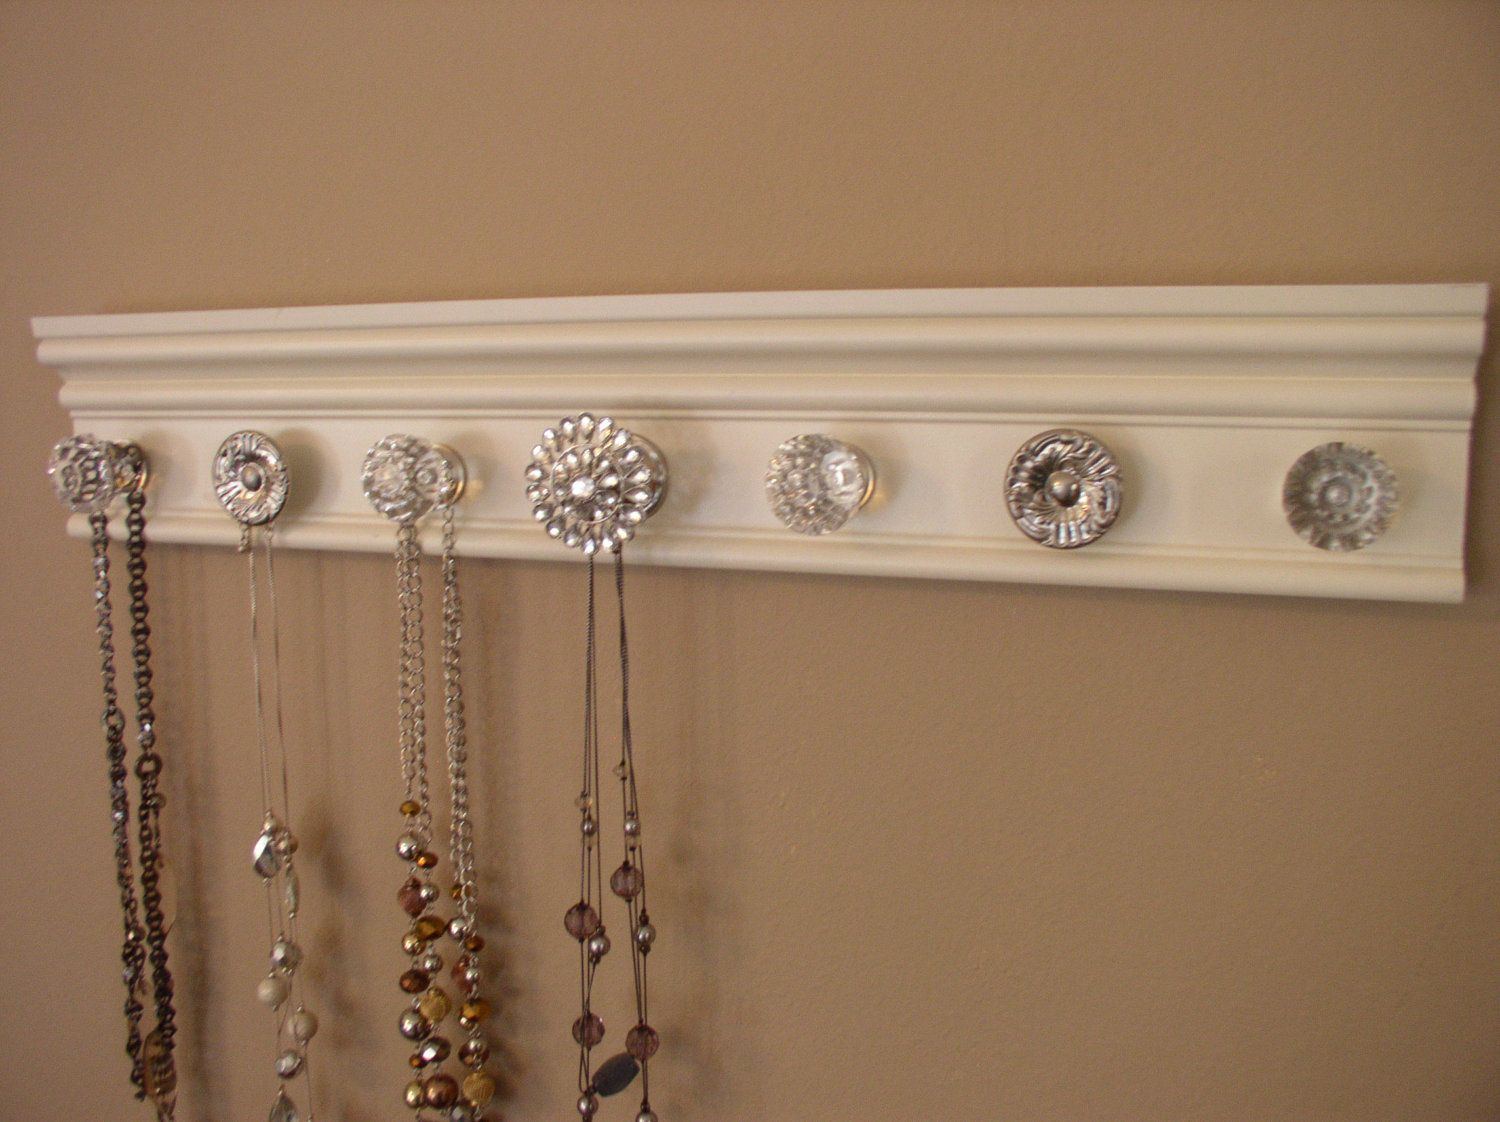 You CHOOSE 5 7 or 9 KNOBS on this Stunning jewelry holder This wall